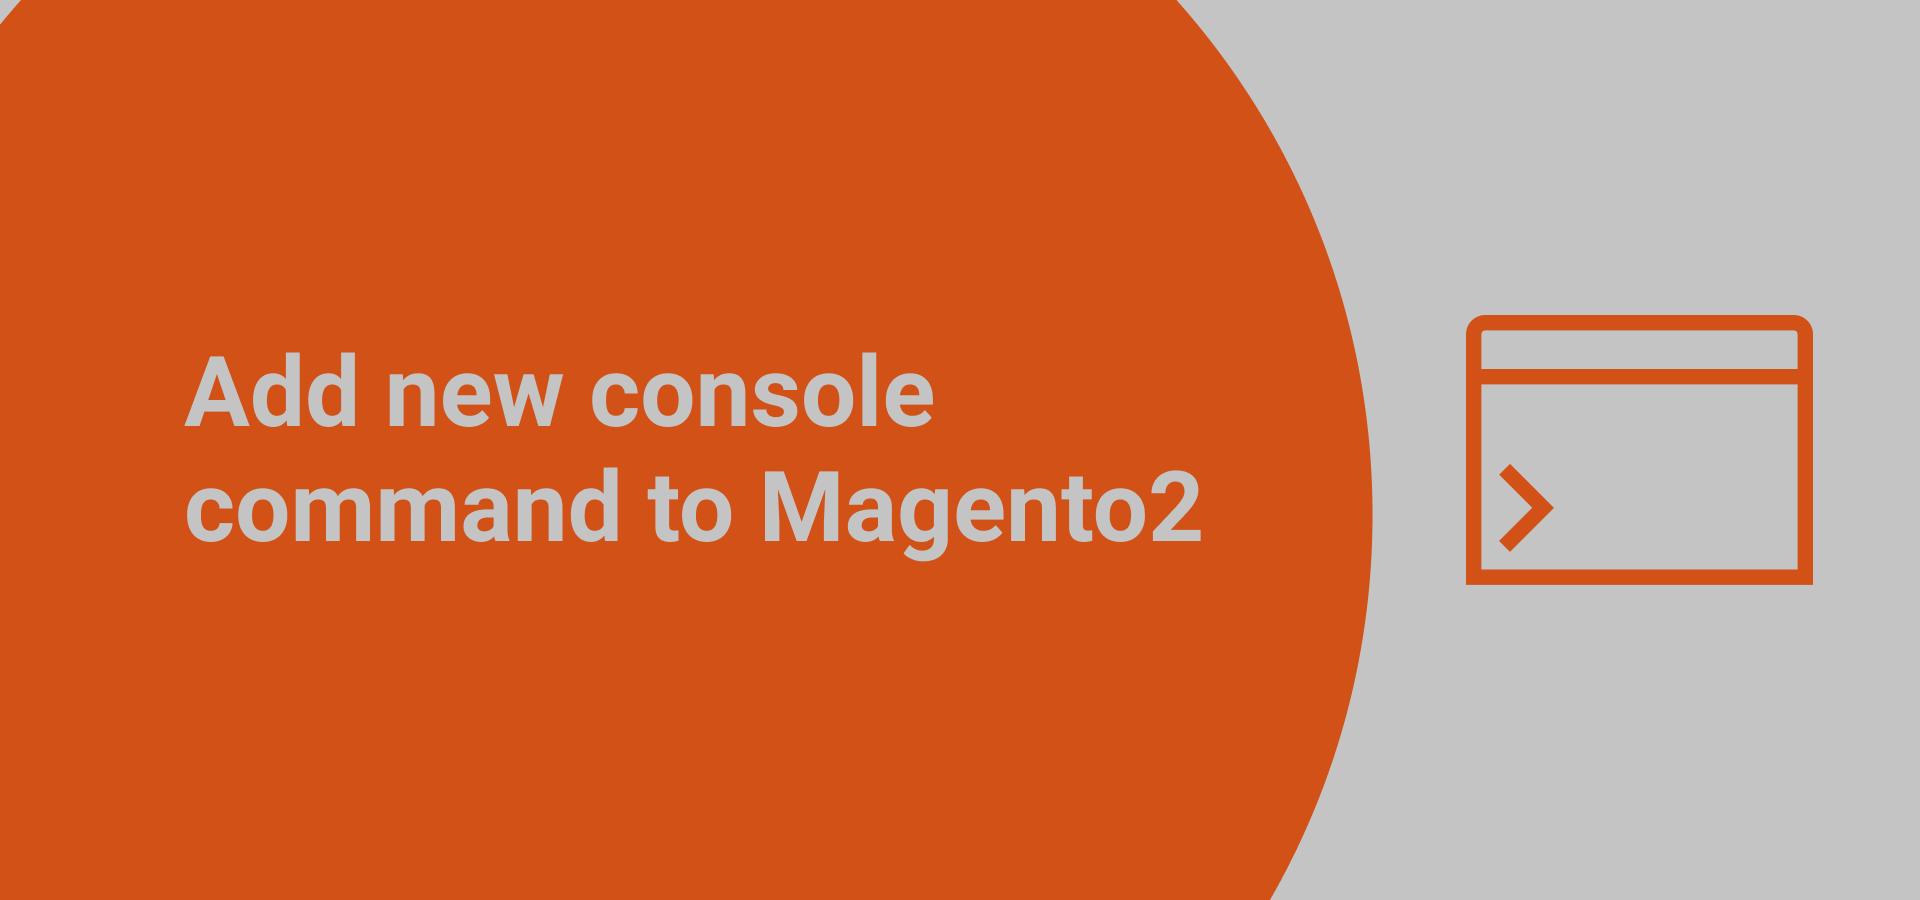 bdn_cli_add-new-console-command-to-magento2